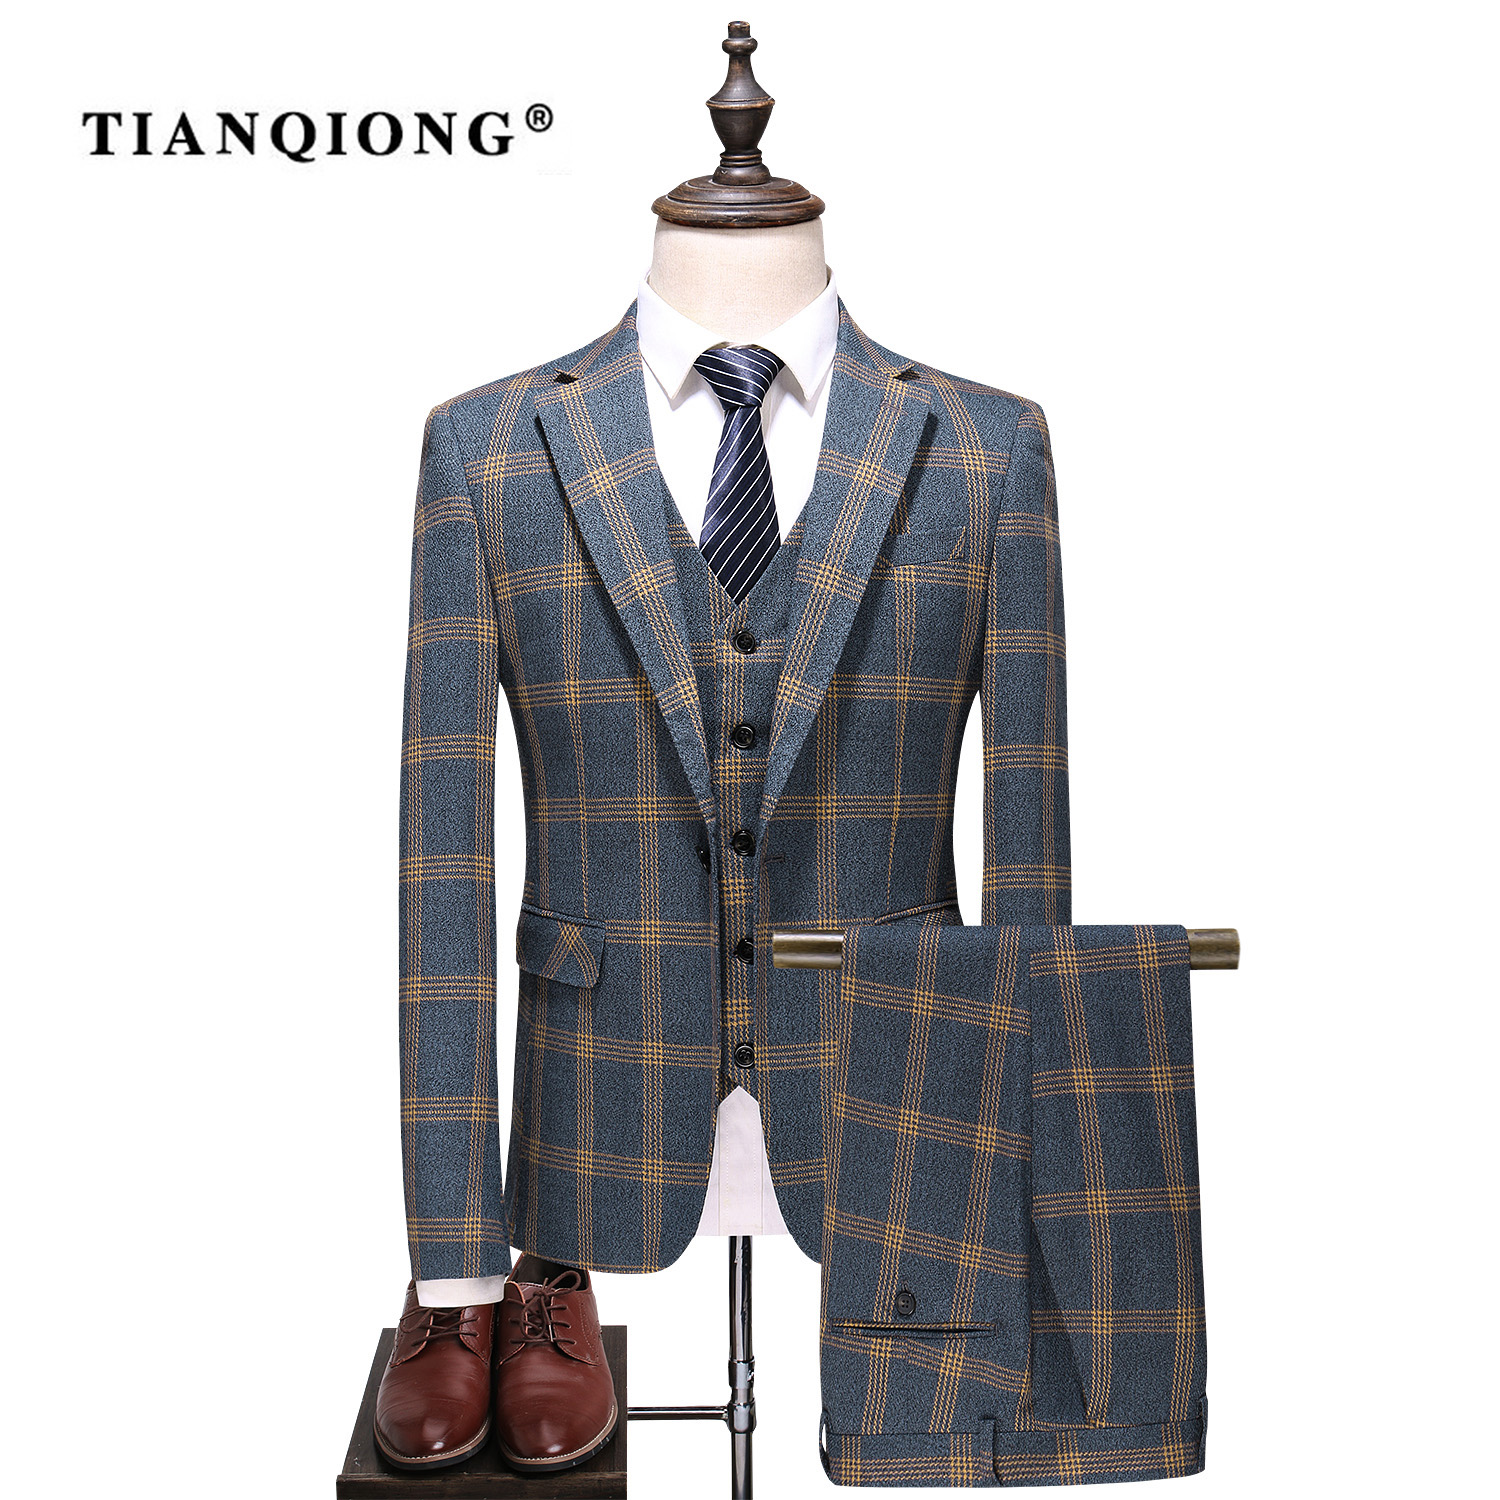 TIAN QIONG White Stripes Wedding Suits 3 Pieces Men Suit Slim Fit Grooms Wedding Business Suits